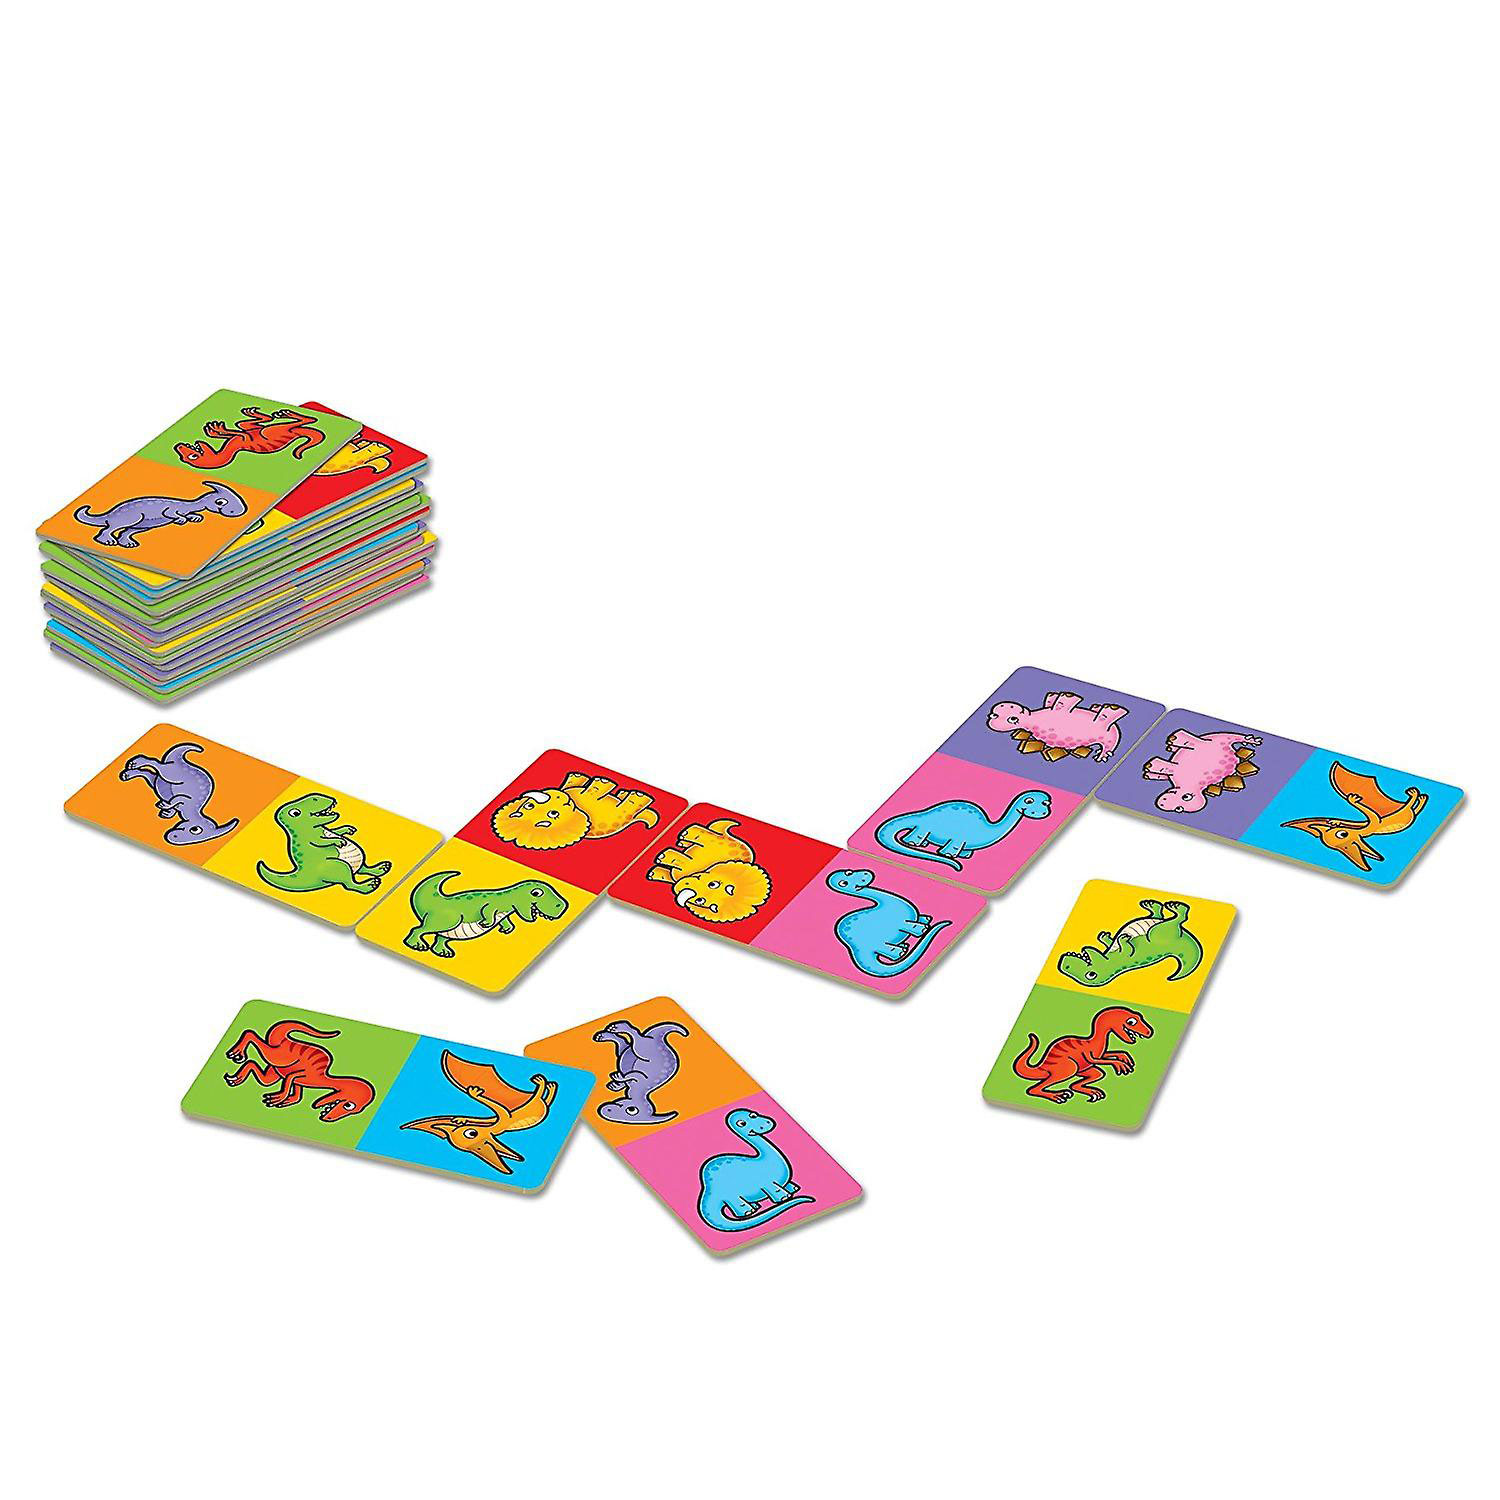 Dinosaur Dominoes Mini Game by Orchard Toys